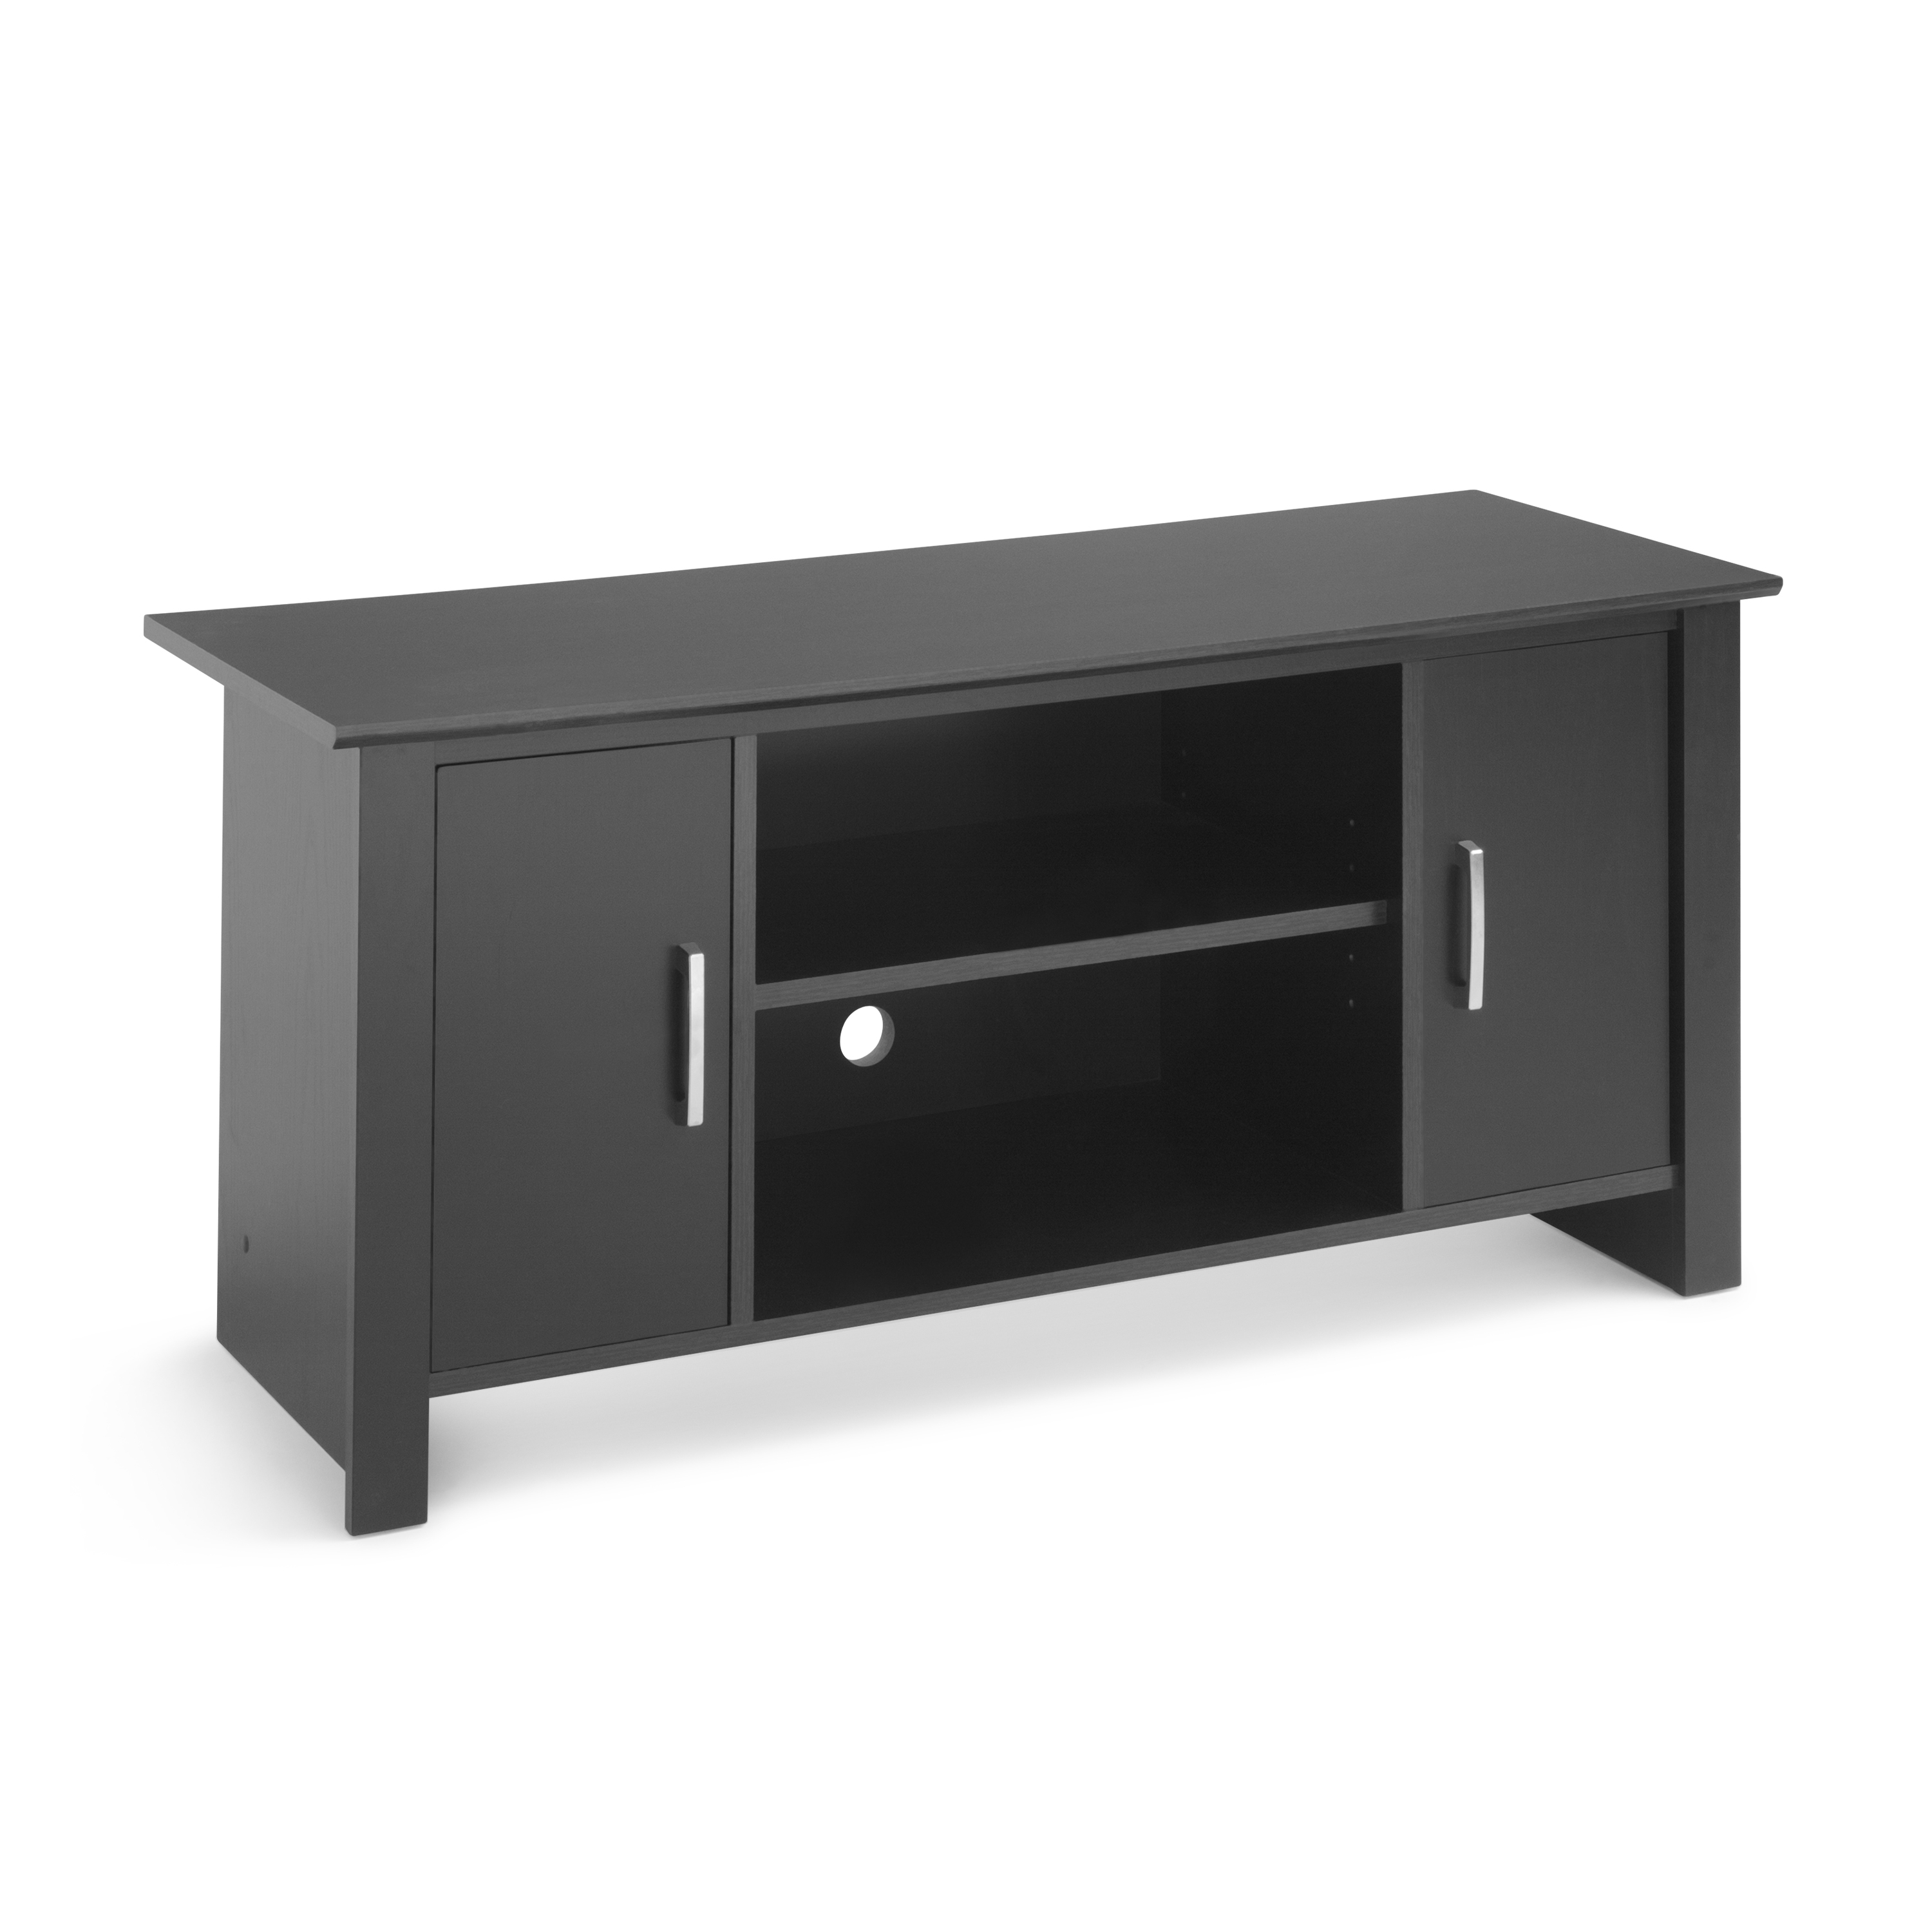 "Mainstays Tv Stand For Flat Screen Tvs Up To 47"", True Black Oak Throughout Famous Canyon 64 Inch Tv Stands (View 7 of 20)"